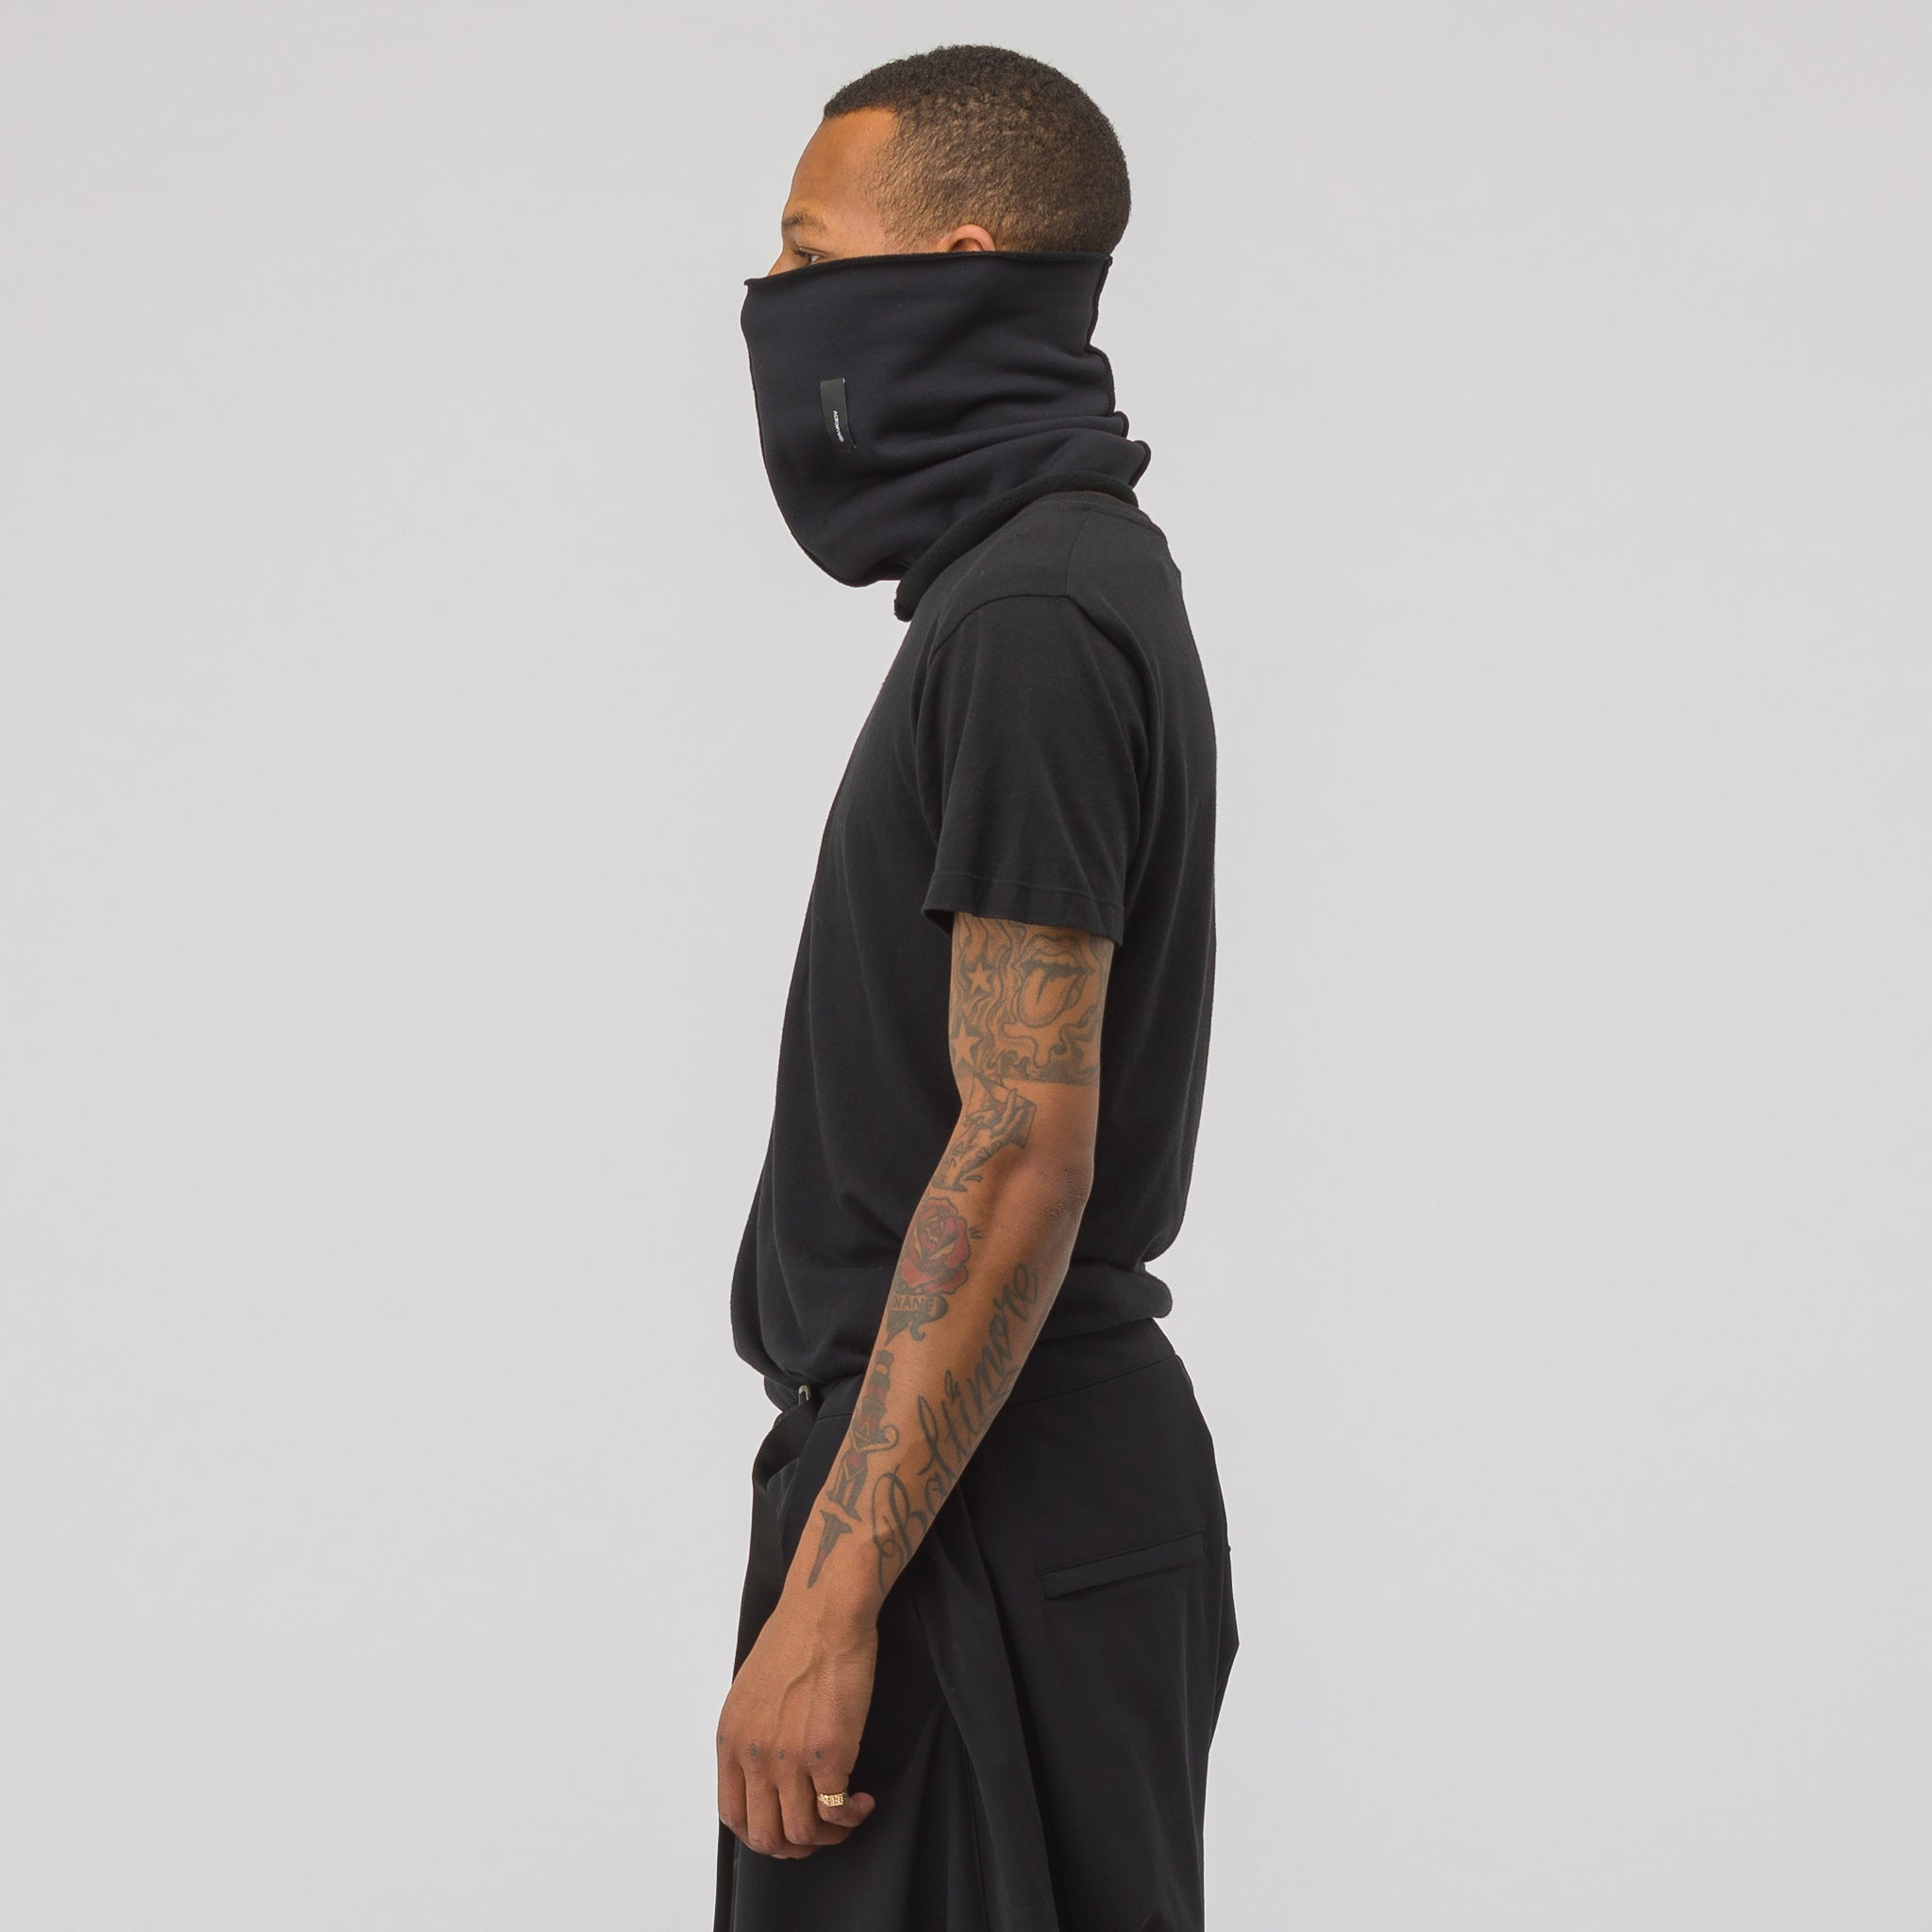 NG8-PS Power Stretch Neck Gaiter in Black